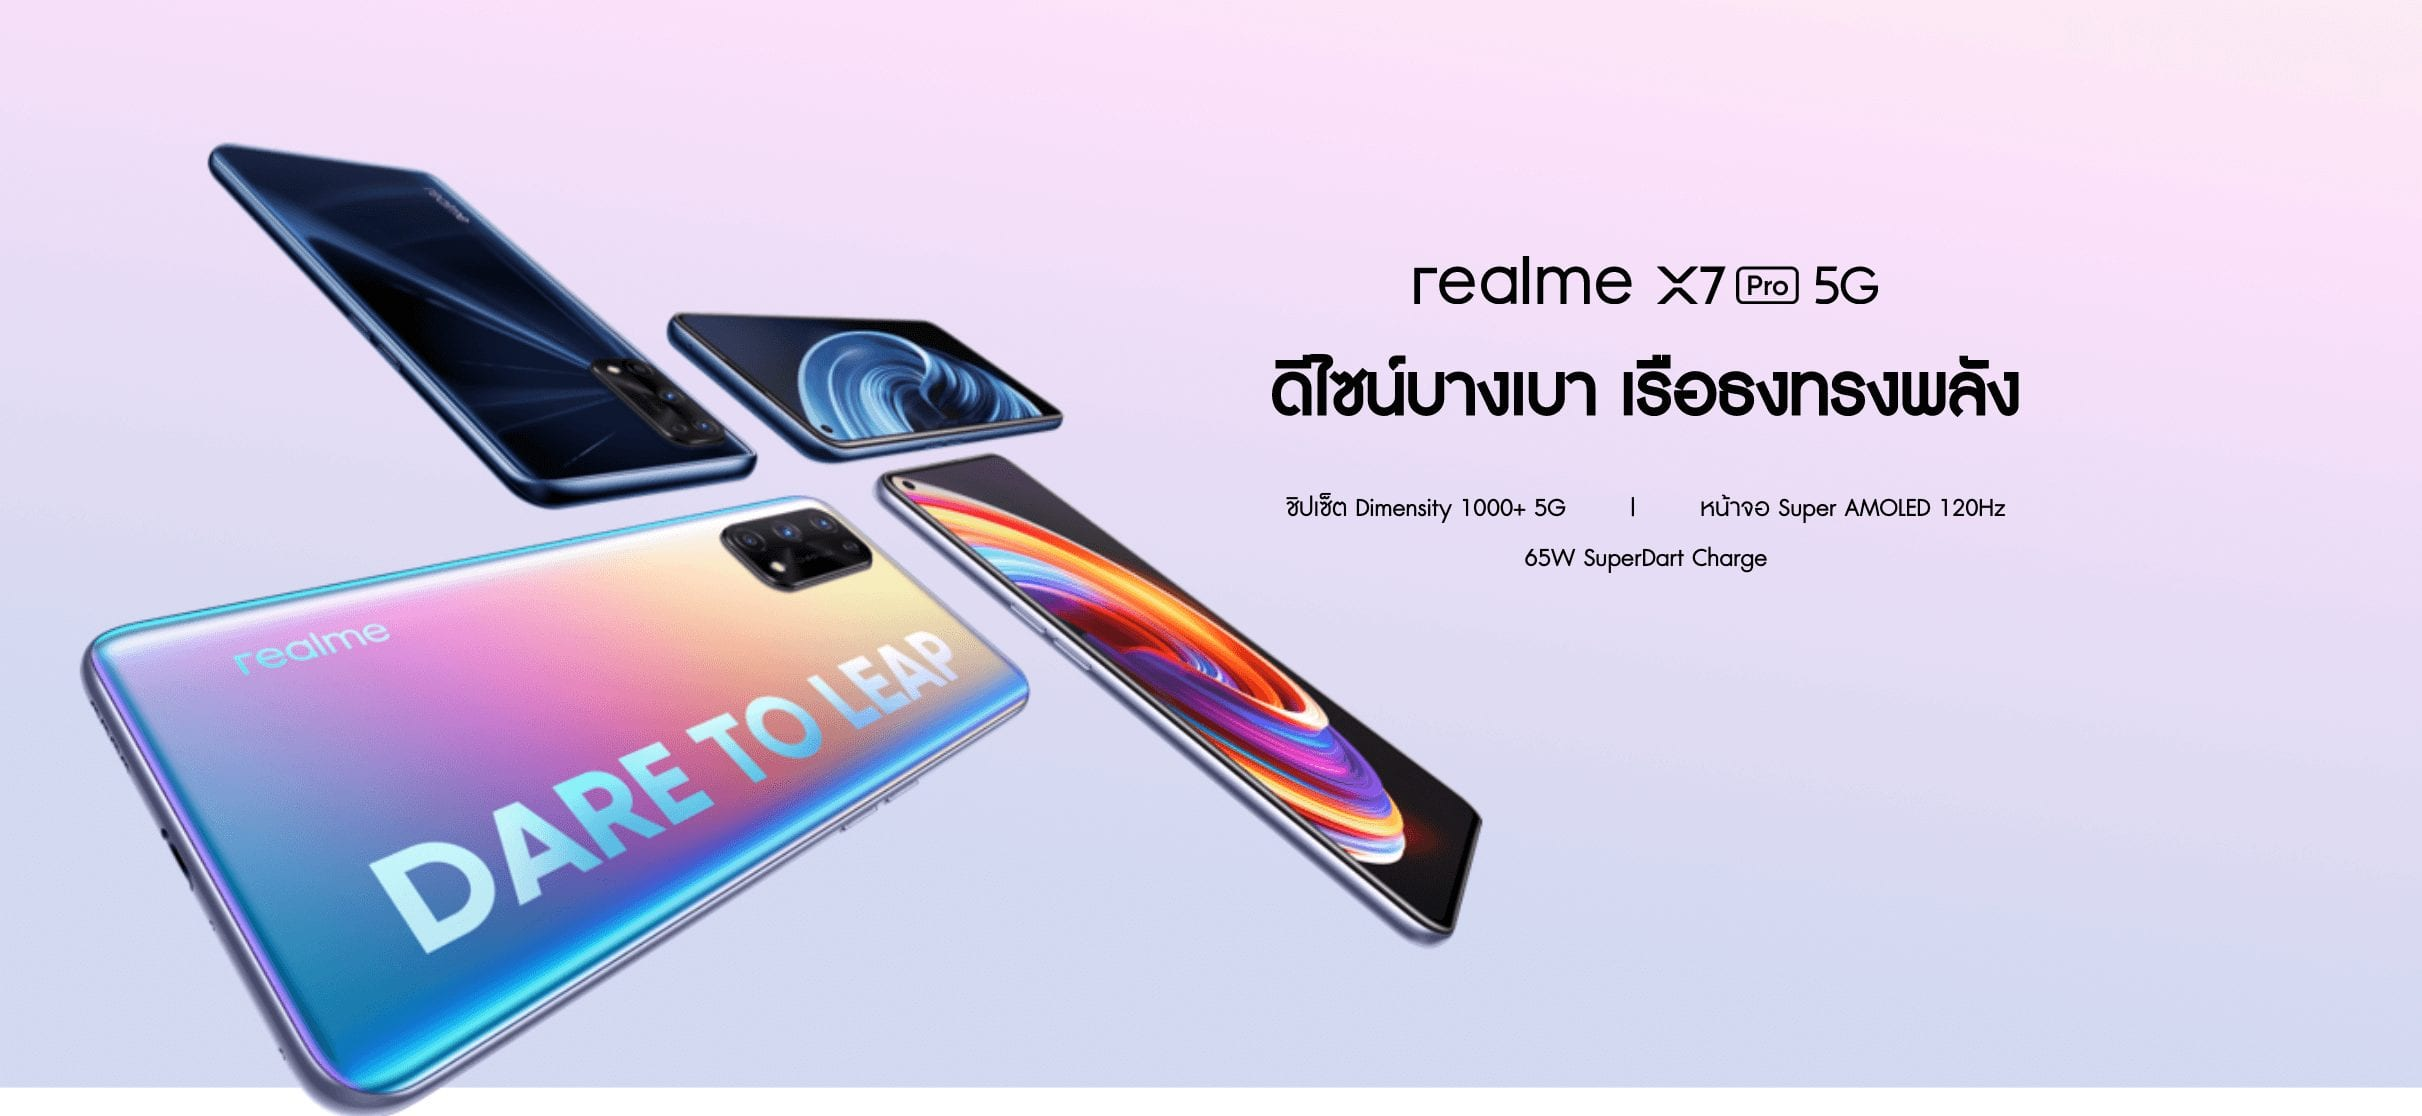 Realme X7 Pro launched in Thailand techweu